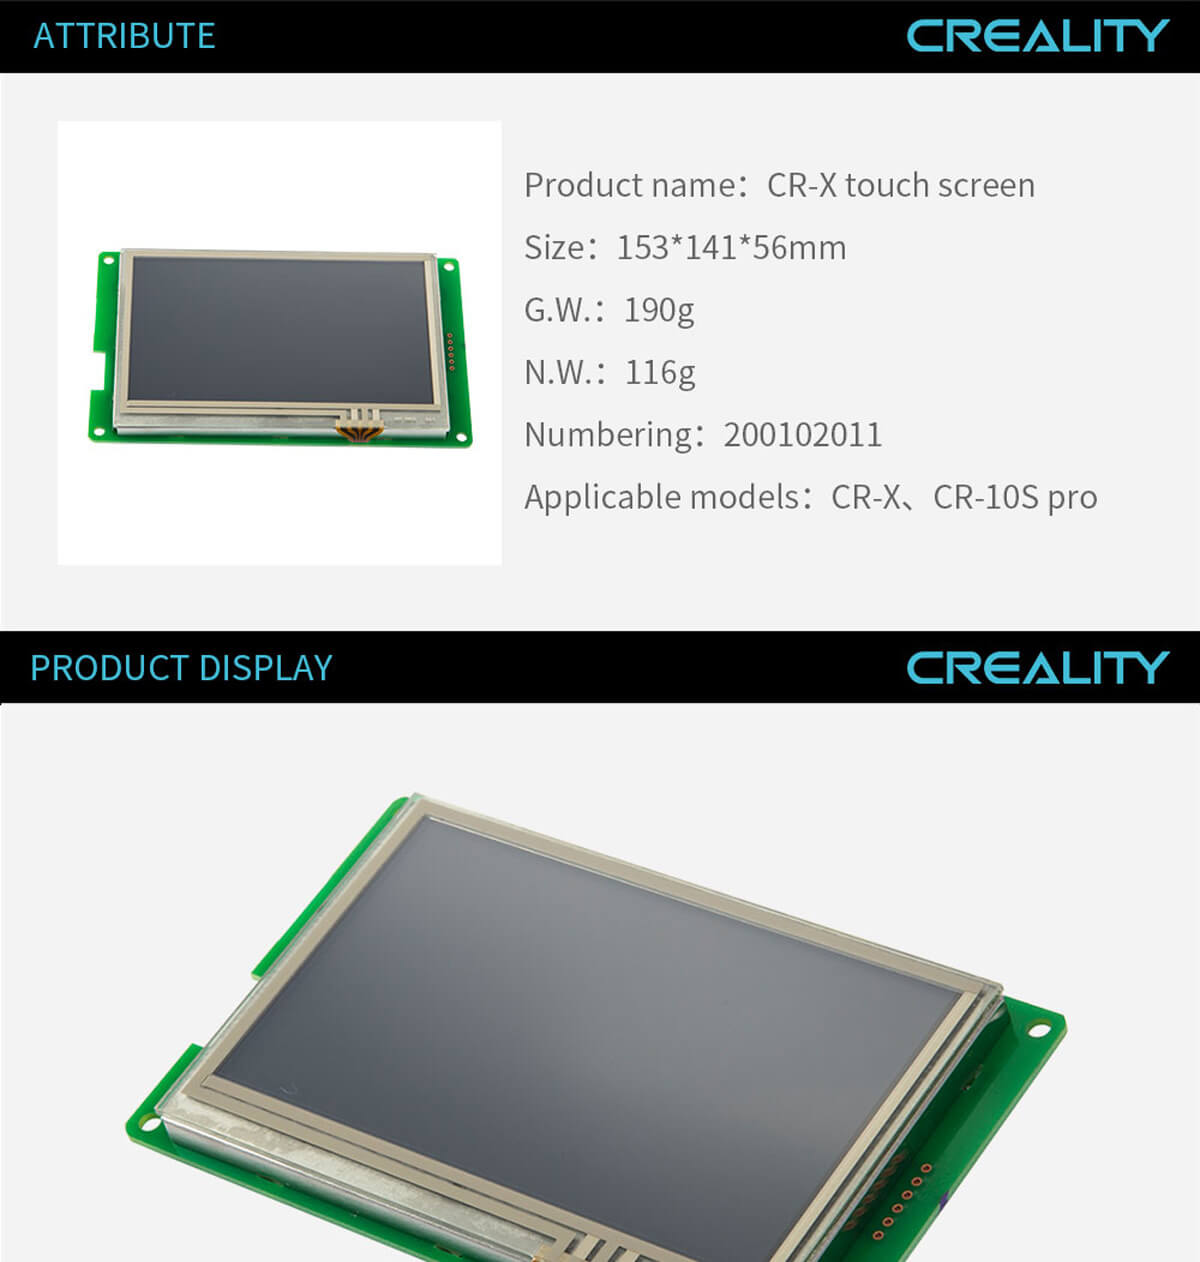 creality-3d-printer-CR-X-Touch-Screen-11